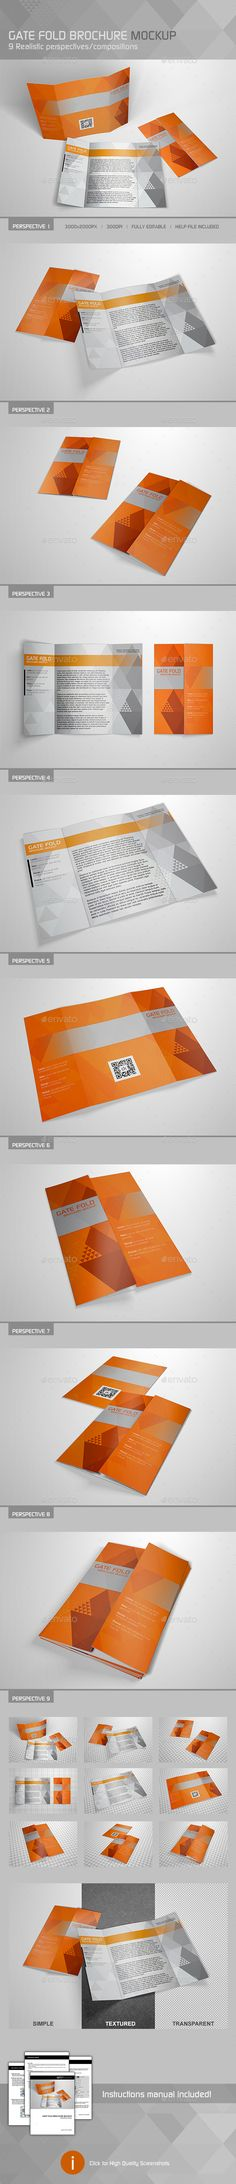 Square Gate Fold Brochure Mockup | Mockup, Brochures And Booklet